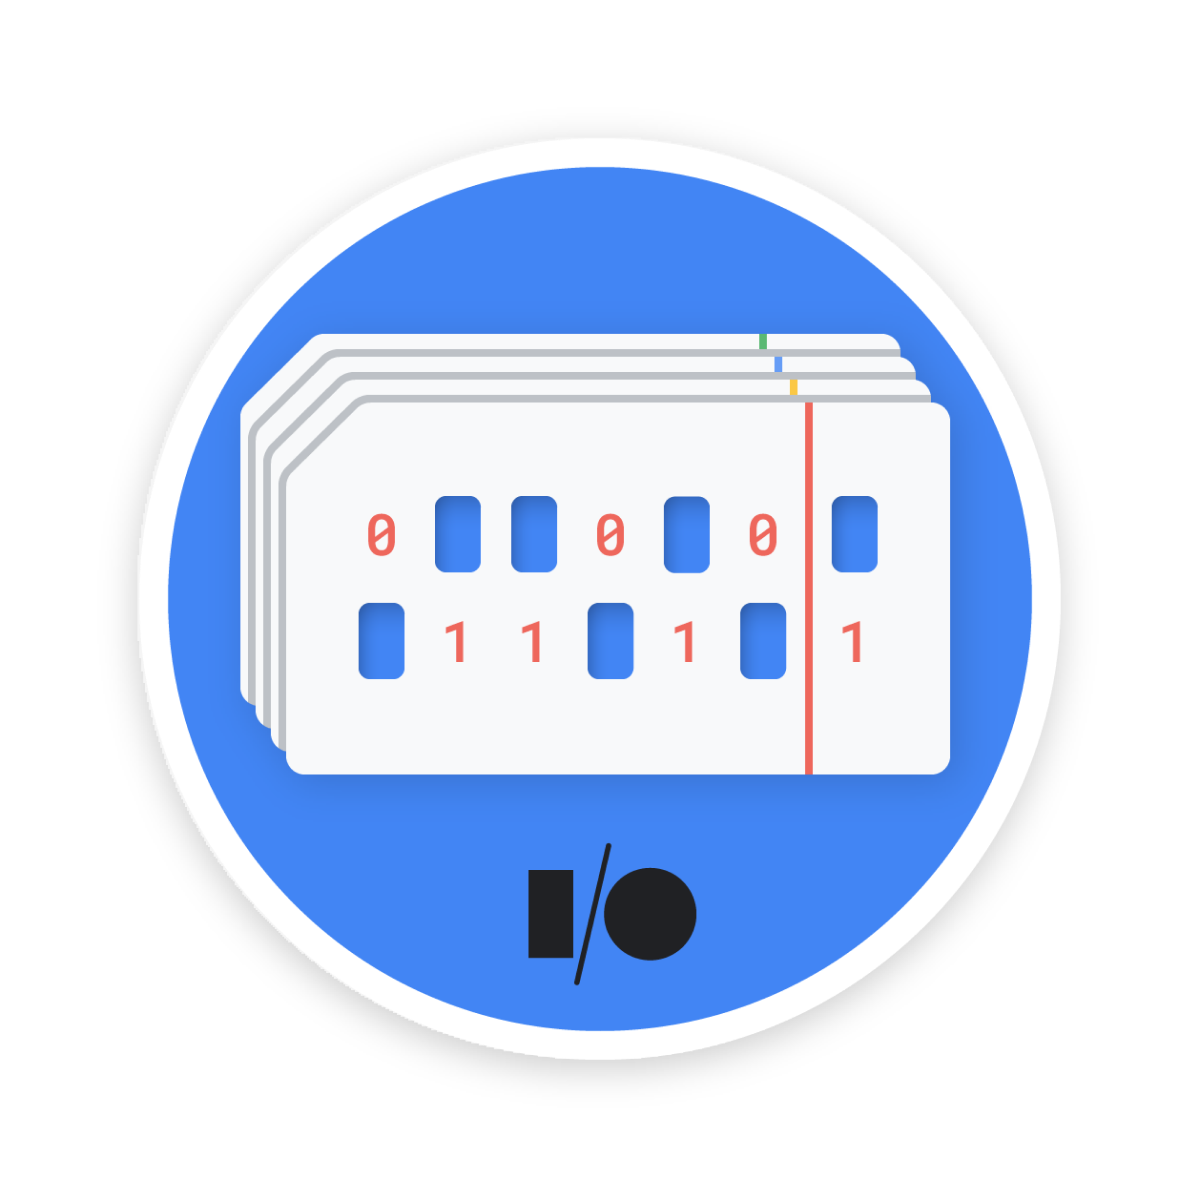 Achievement unlocked! I cracked the punch-card puzzle! Try it yourself. #DevBadges #GoogleIO